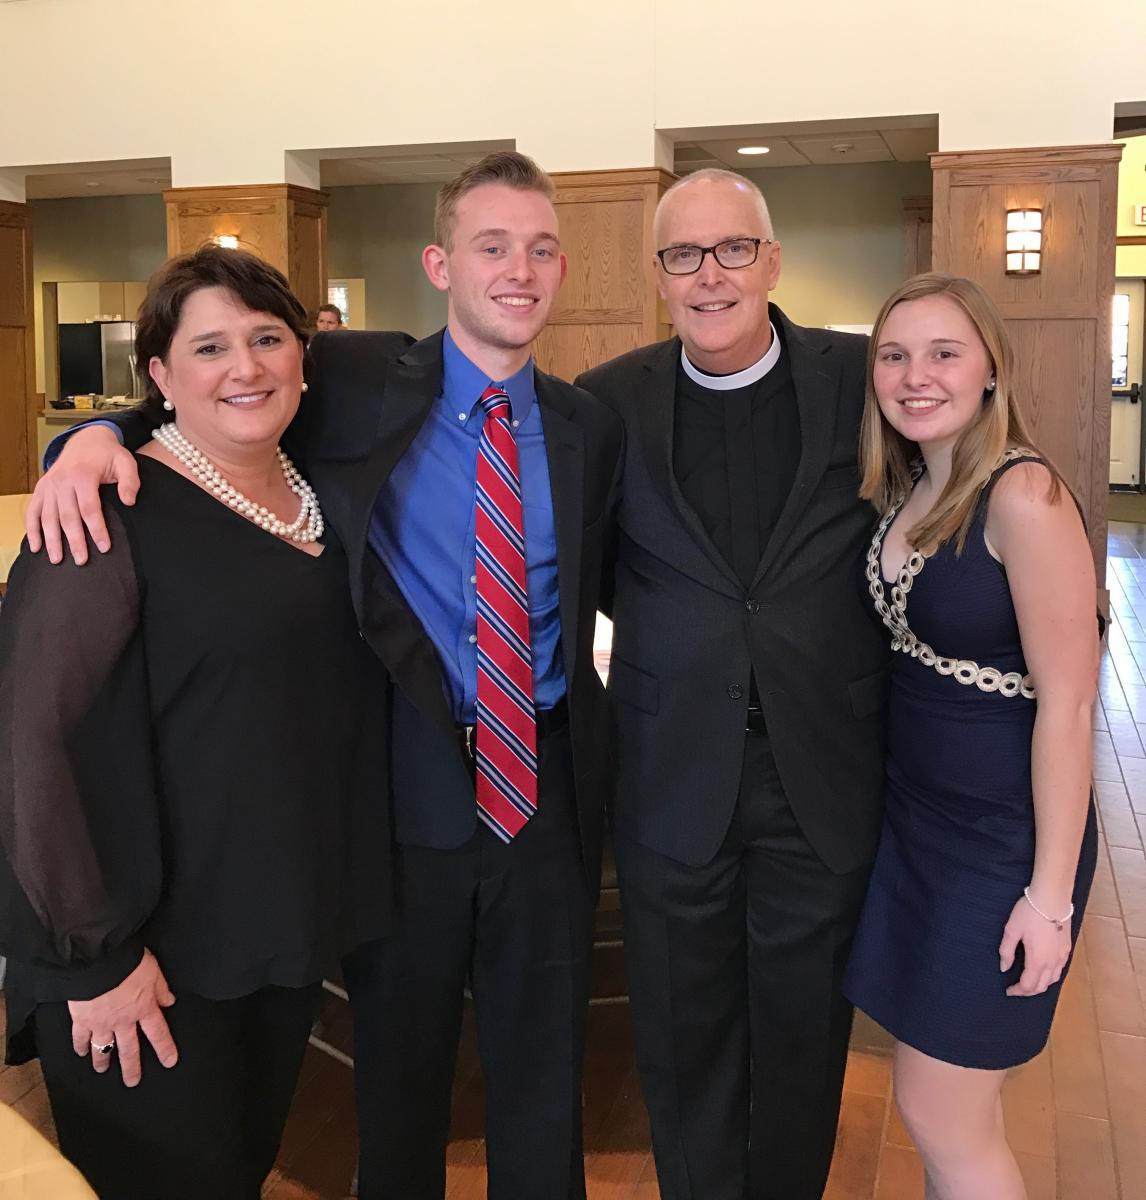 Scott Balderson, PA, was ordained a deacon in the Episcopal Church at the Canterbury School in Greensboro on January 28, 2017. Here he is at the ordination with his proud family; his wife Christina, his son Carter and his daughter Isabel.